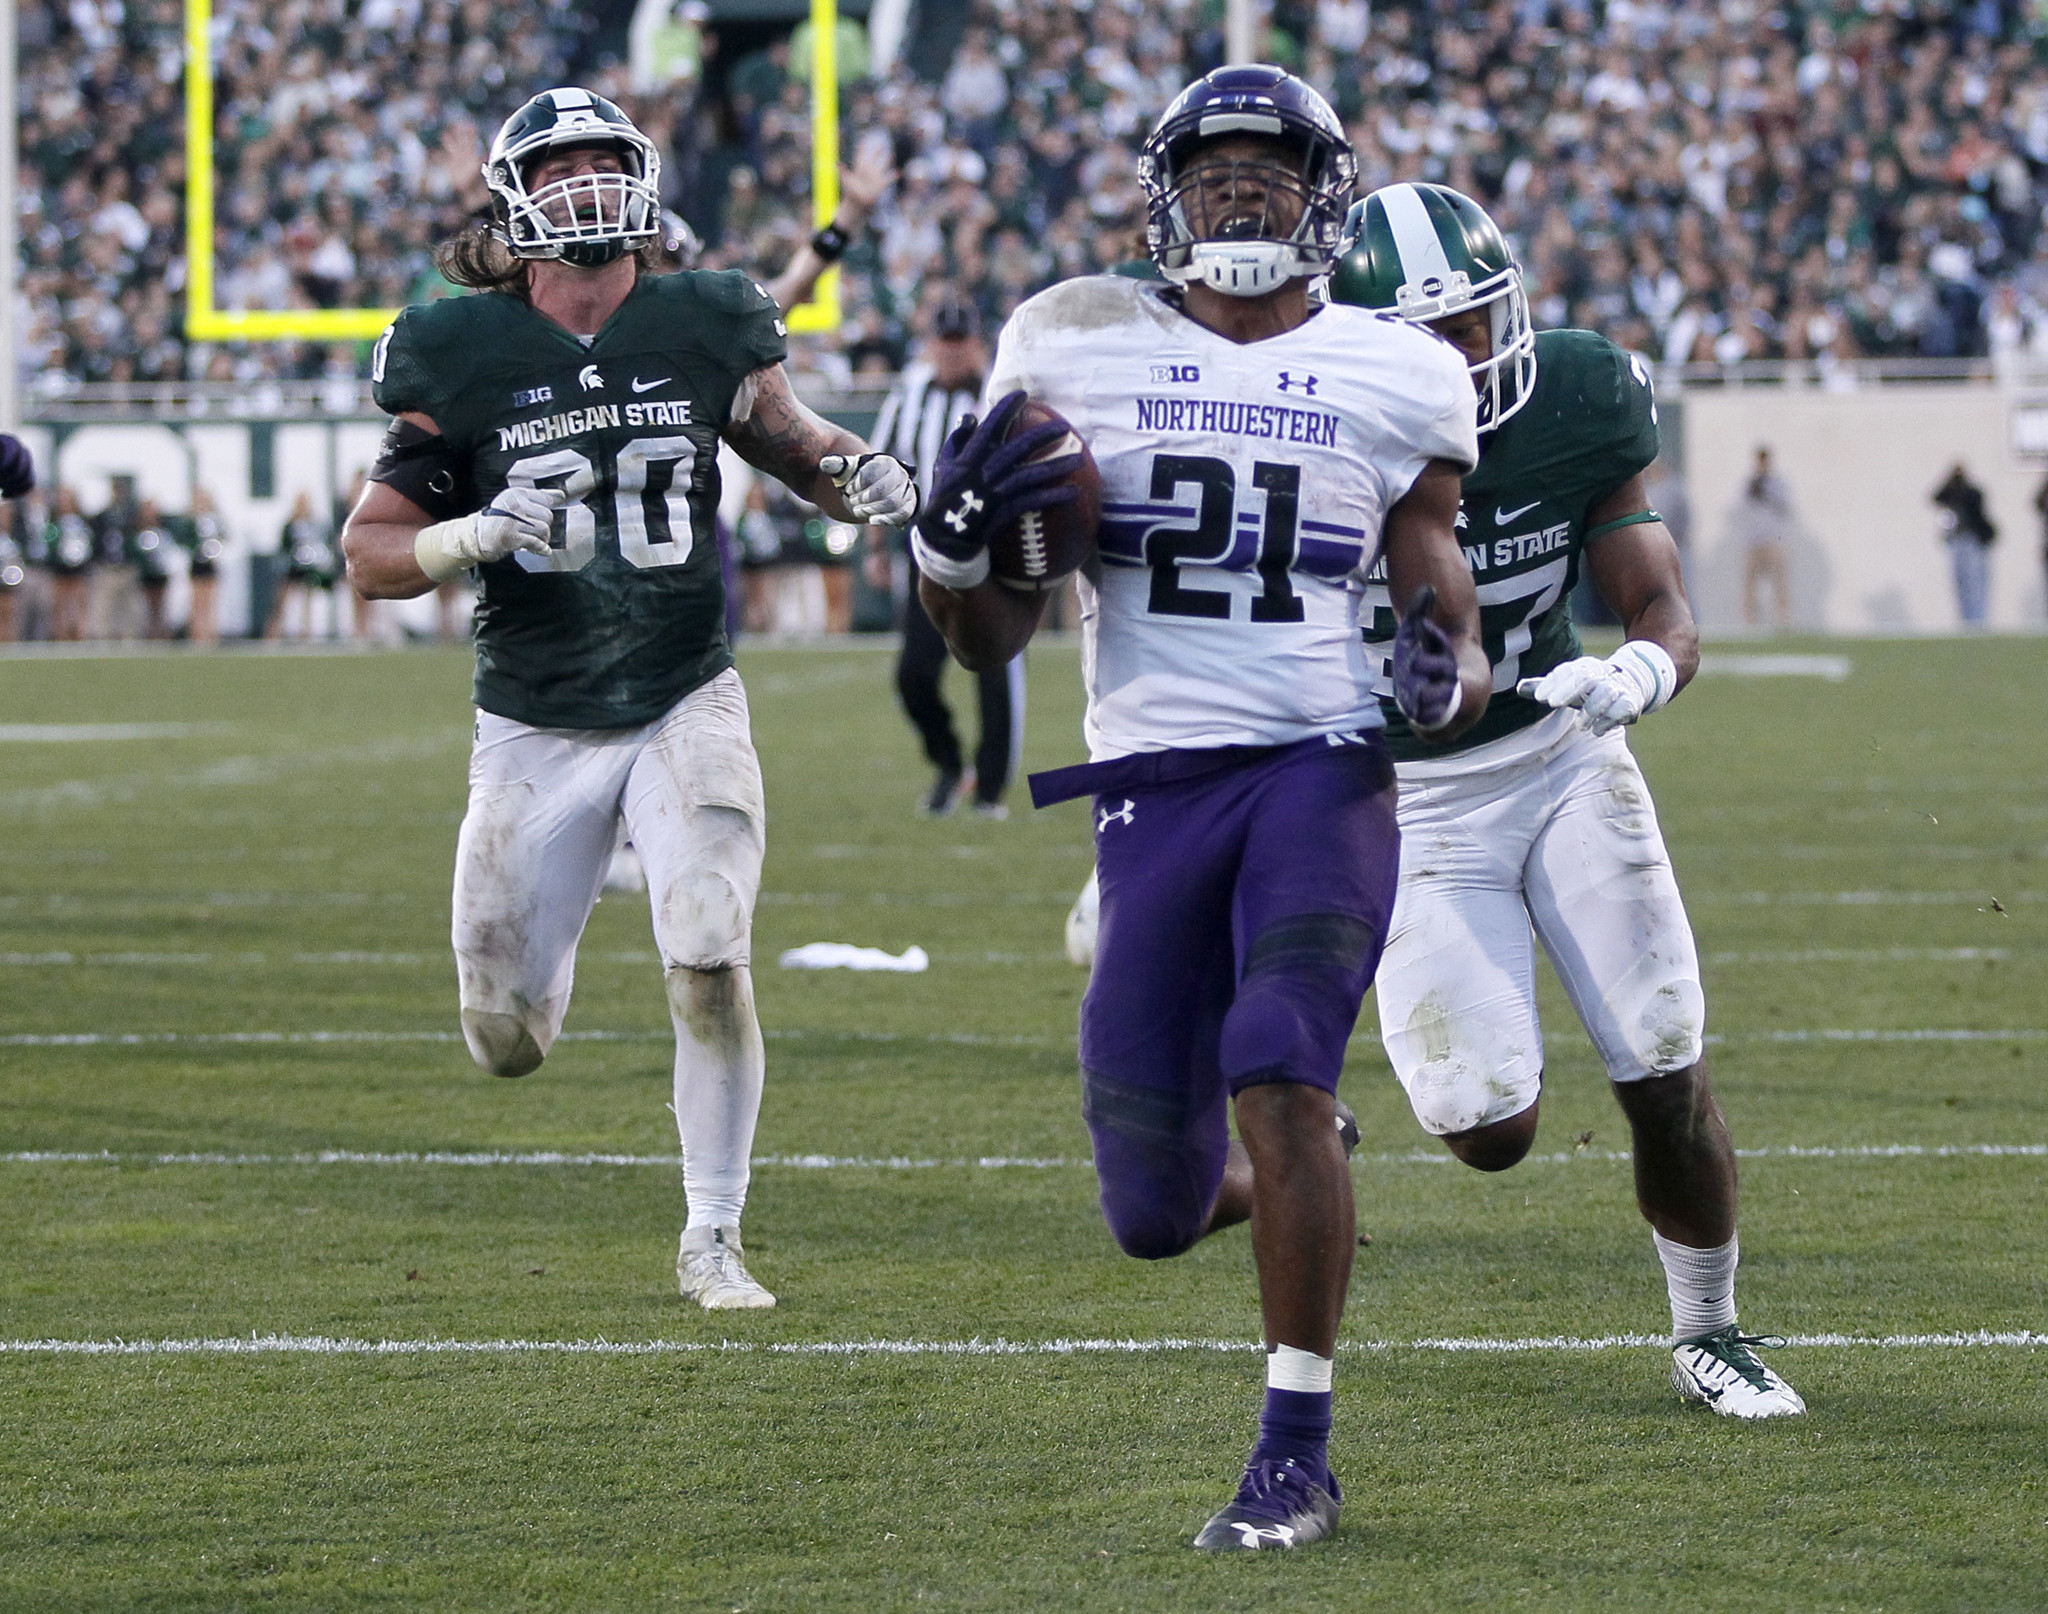 Ct-northwestern-indiana-preview-spt-1022-20161021